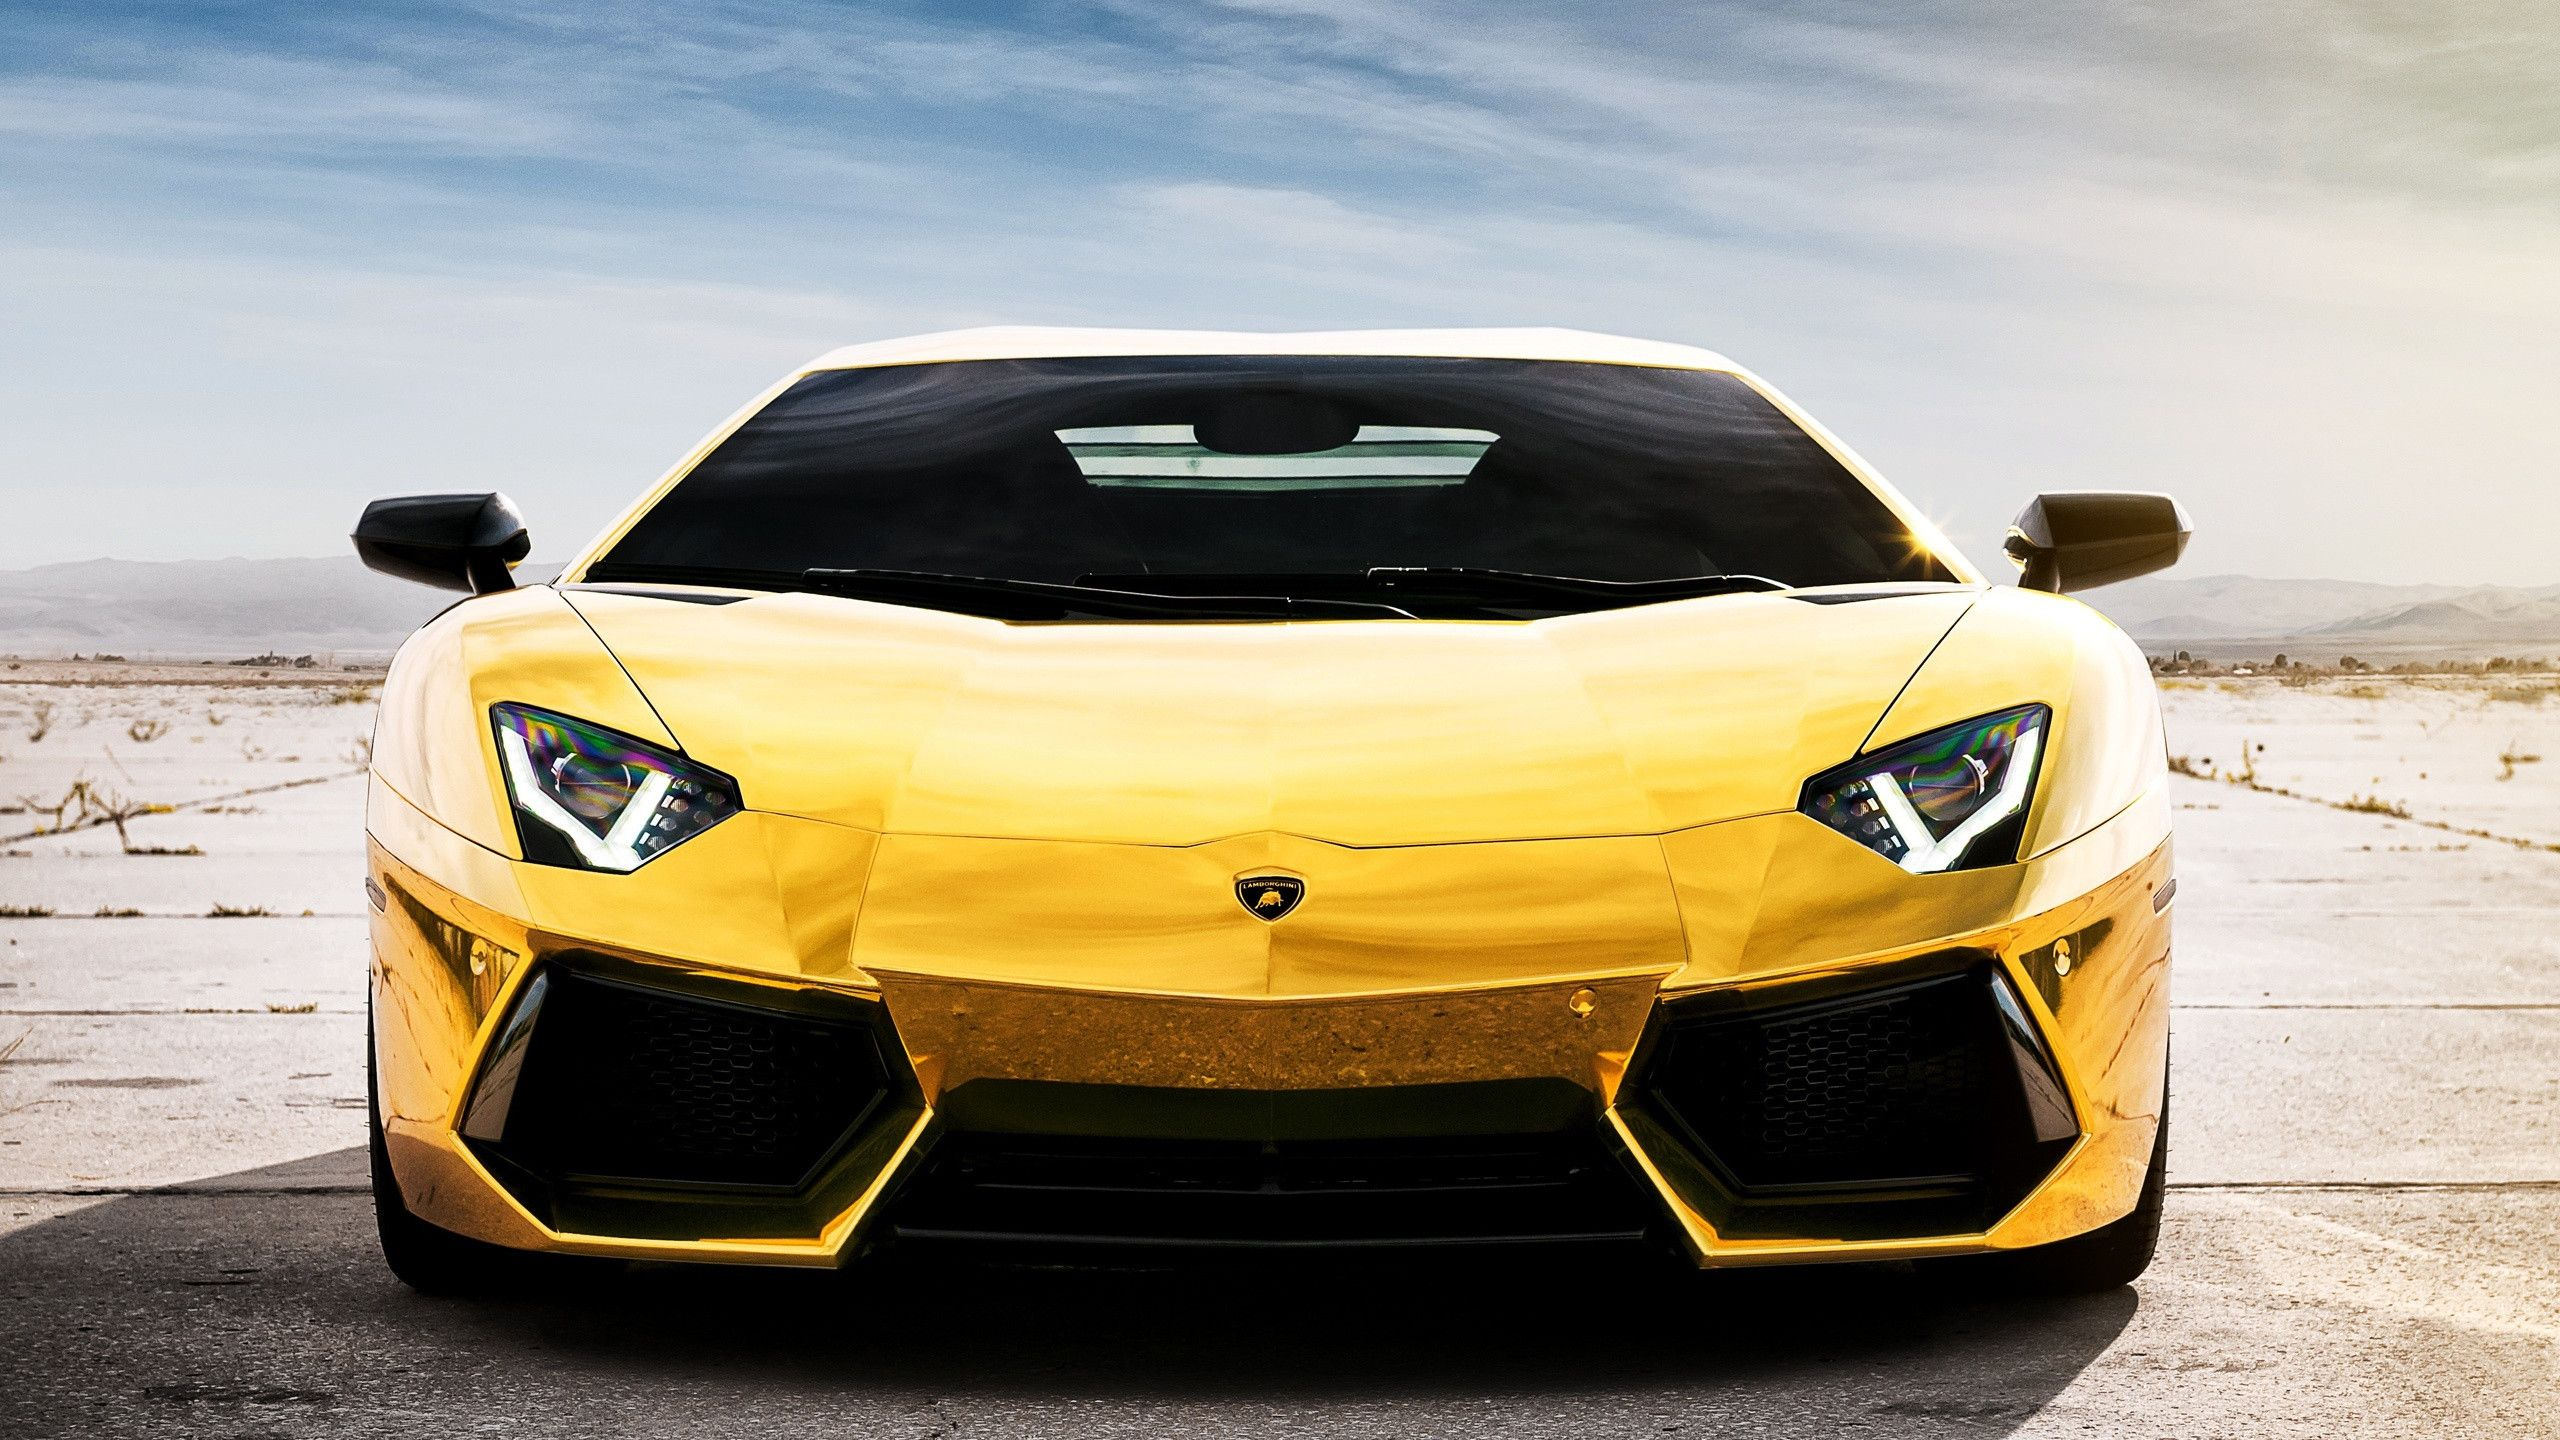 Lamborghini Aventador Wallpaper 8 Backgrounds Wallruru 2560x1440